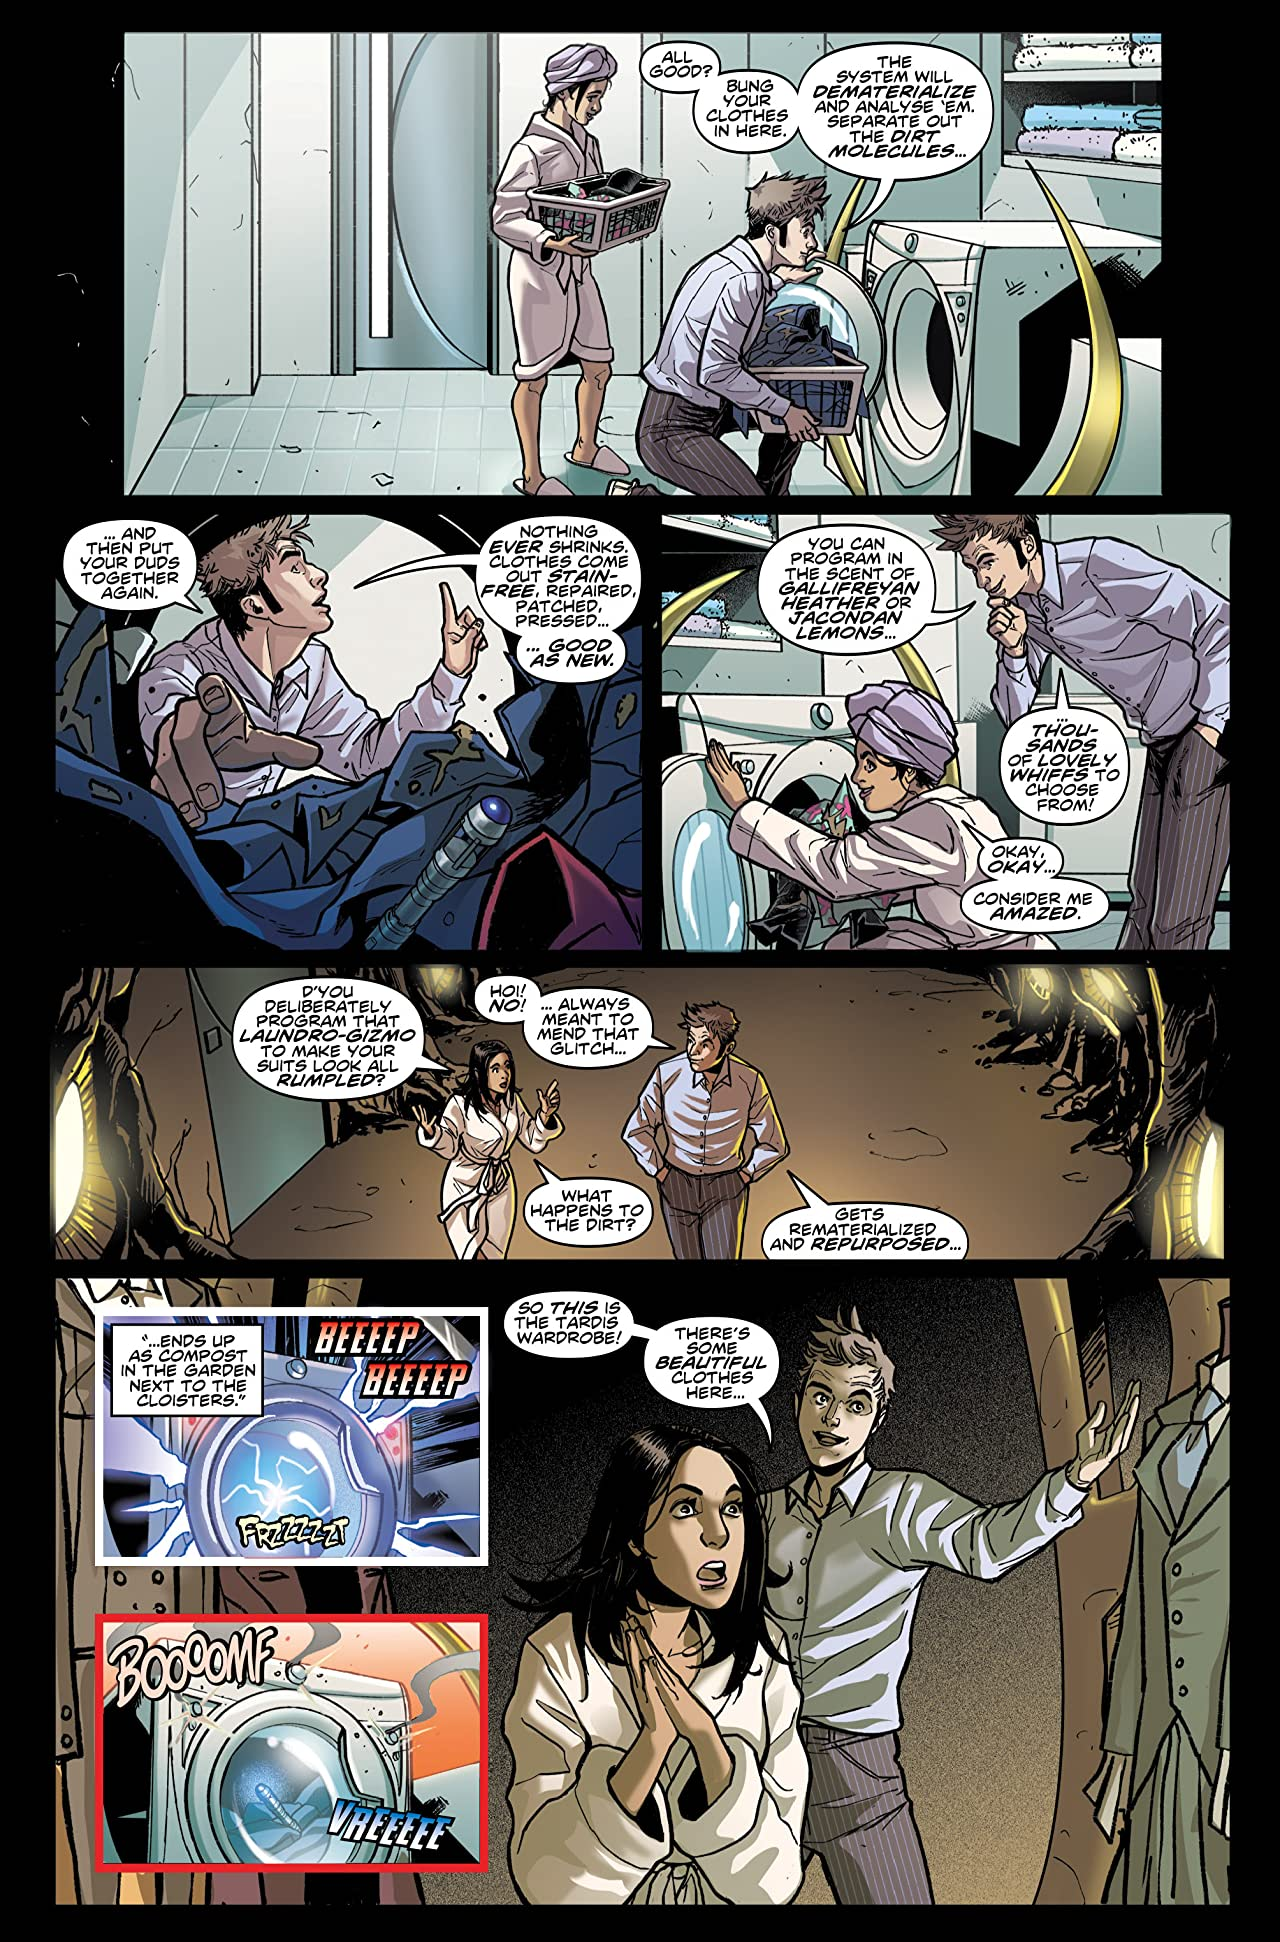 Doctor Who: The Tenth Doctor Vol. 3